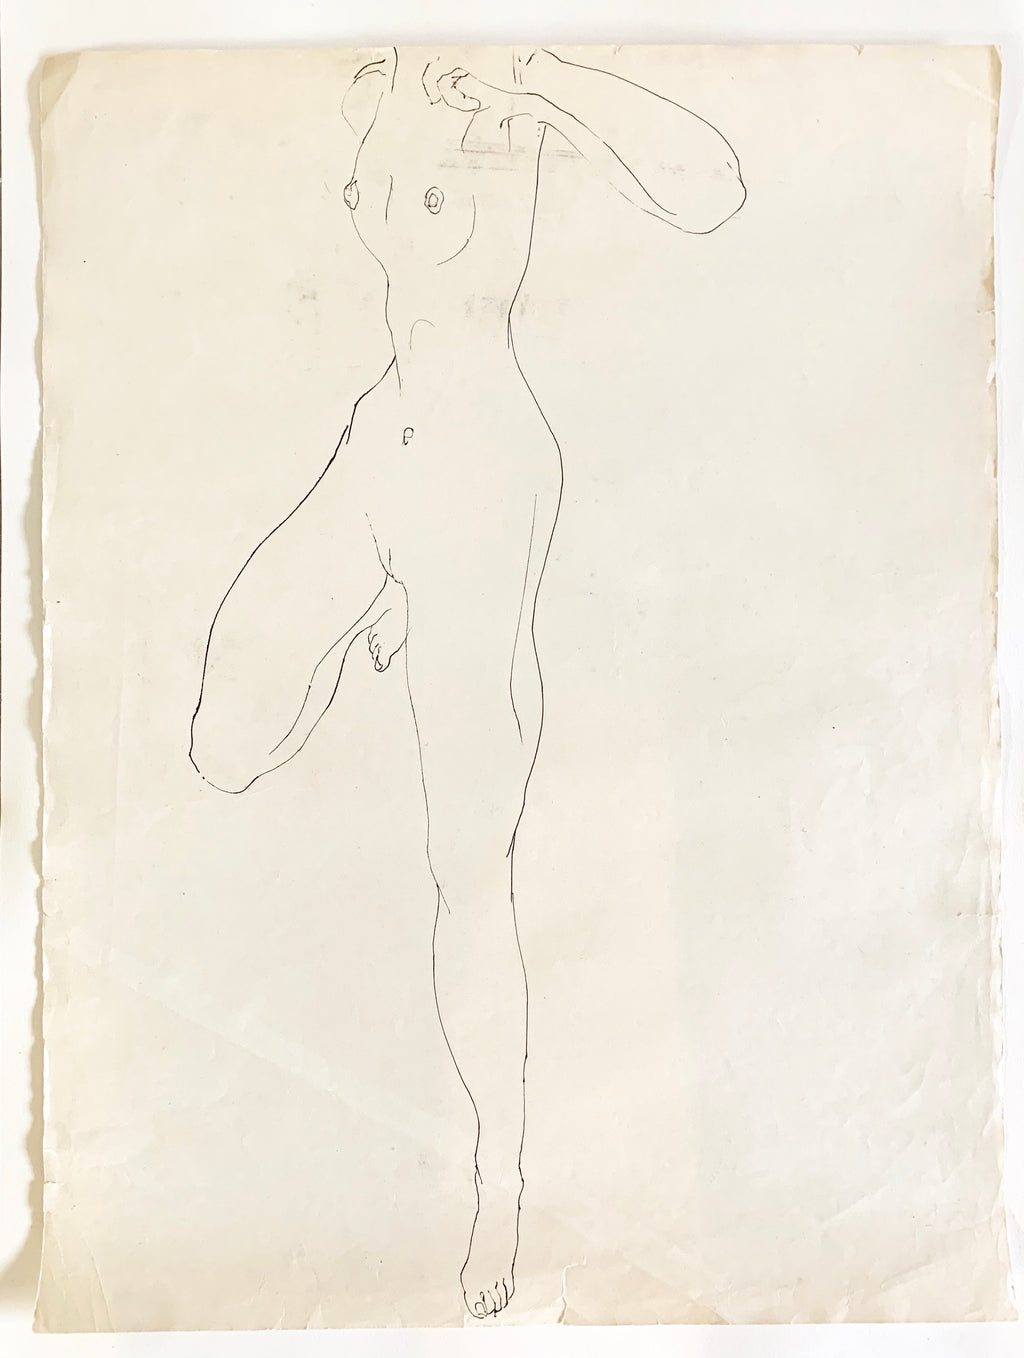 Vintage Nude Sketch #2 by Tom Sheffield